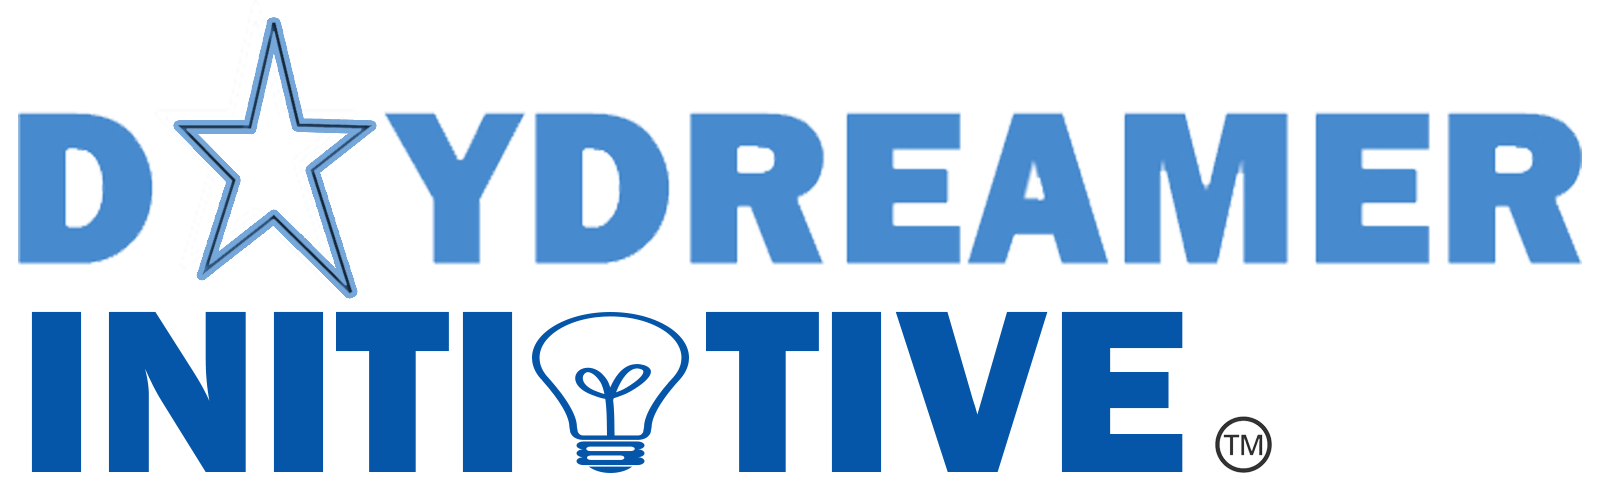 Daydreamer Initiative